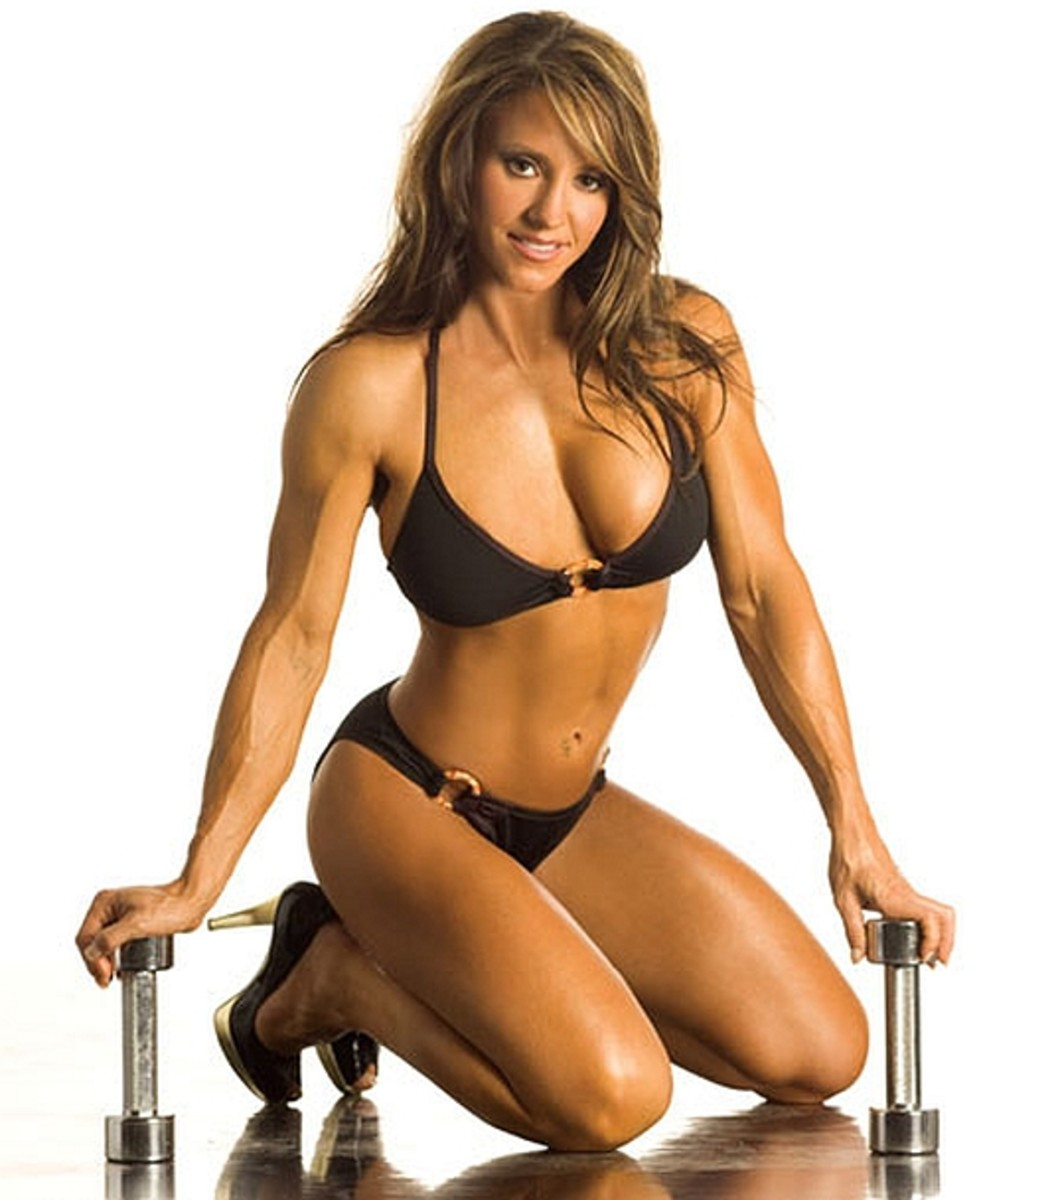 Female Fitness Models and Female Fitness Competitors 8